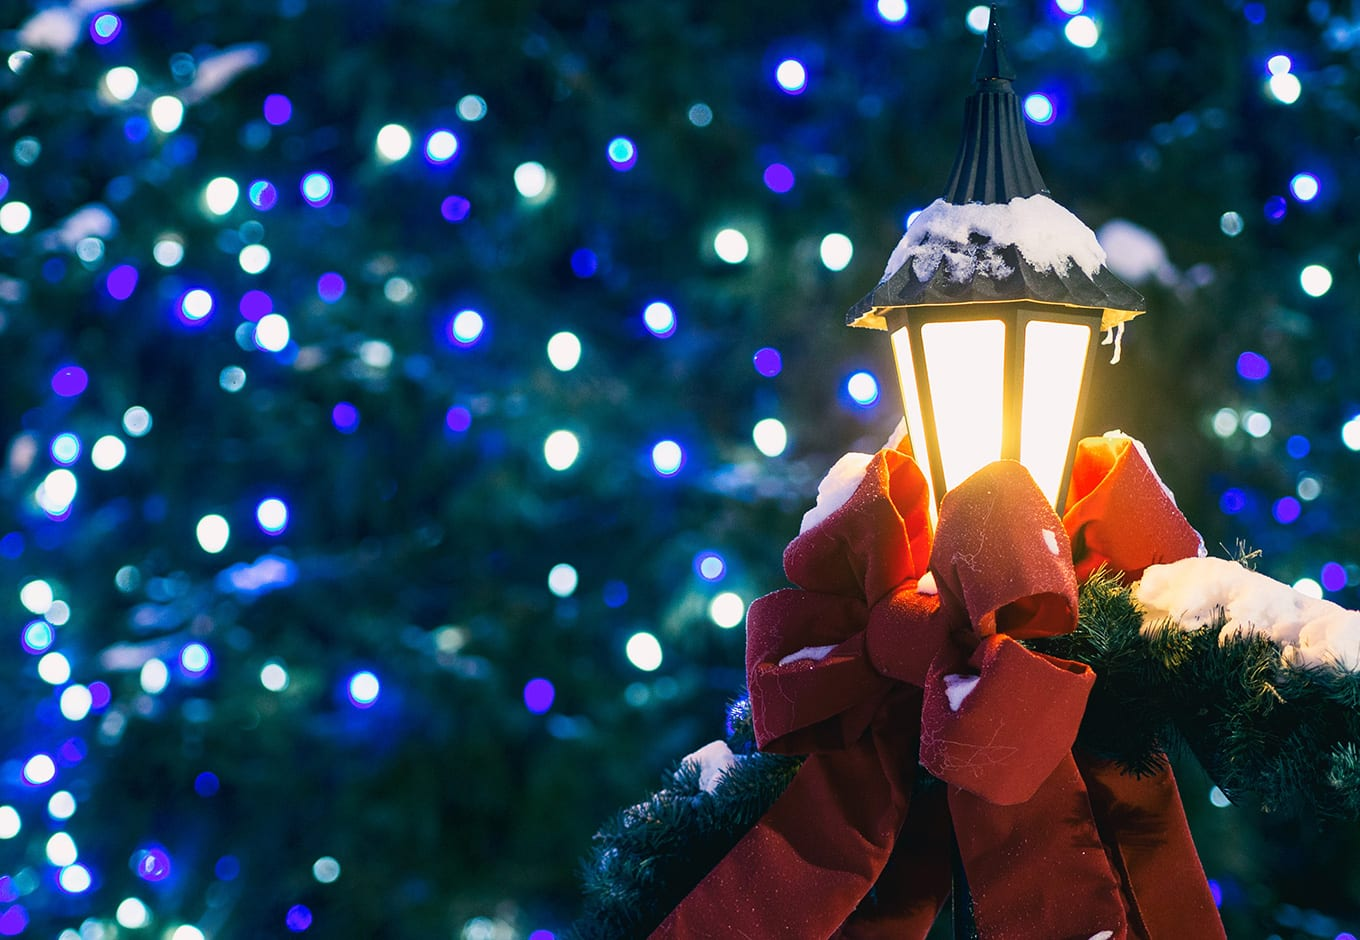 best time to see lights in Dyker Heights is December 2020